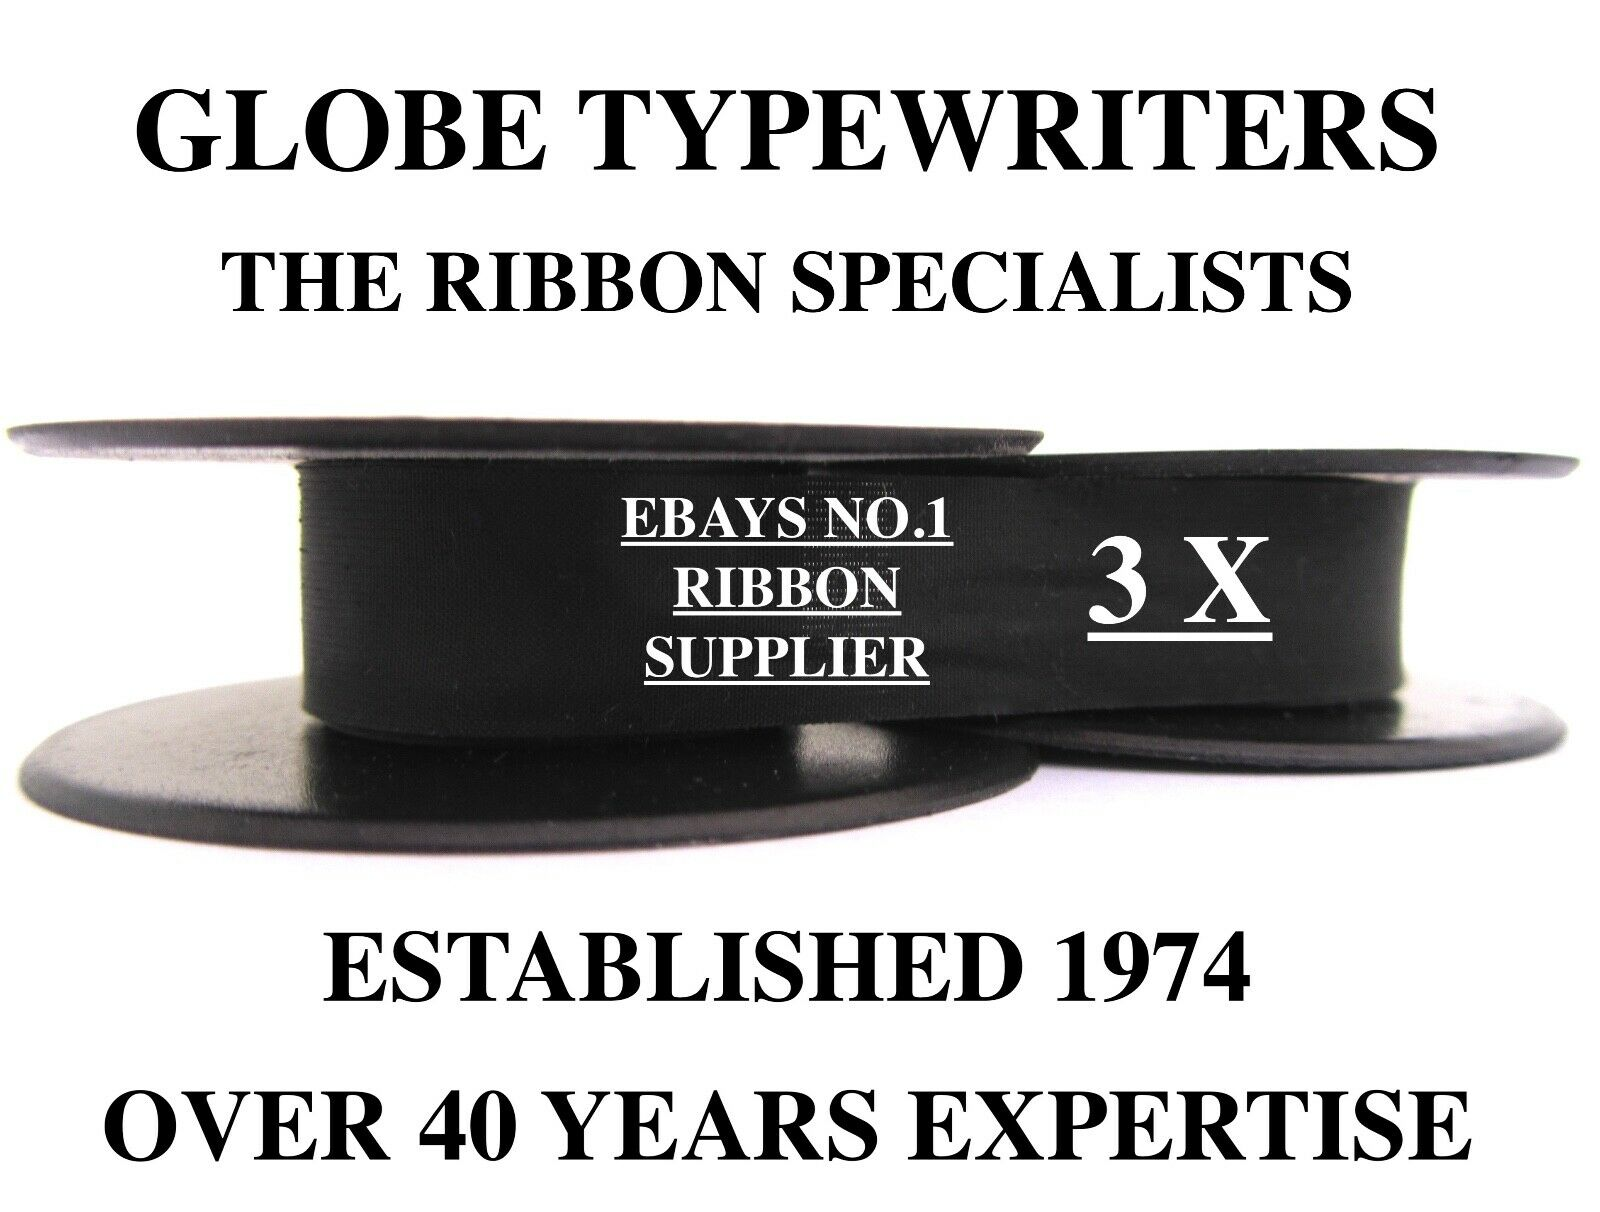 3 x 'SILVER REED SEVENTY' *BLACK* TOP QUALITY *10 METRE* TYPEWRITER RIBBONS